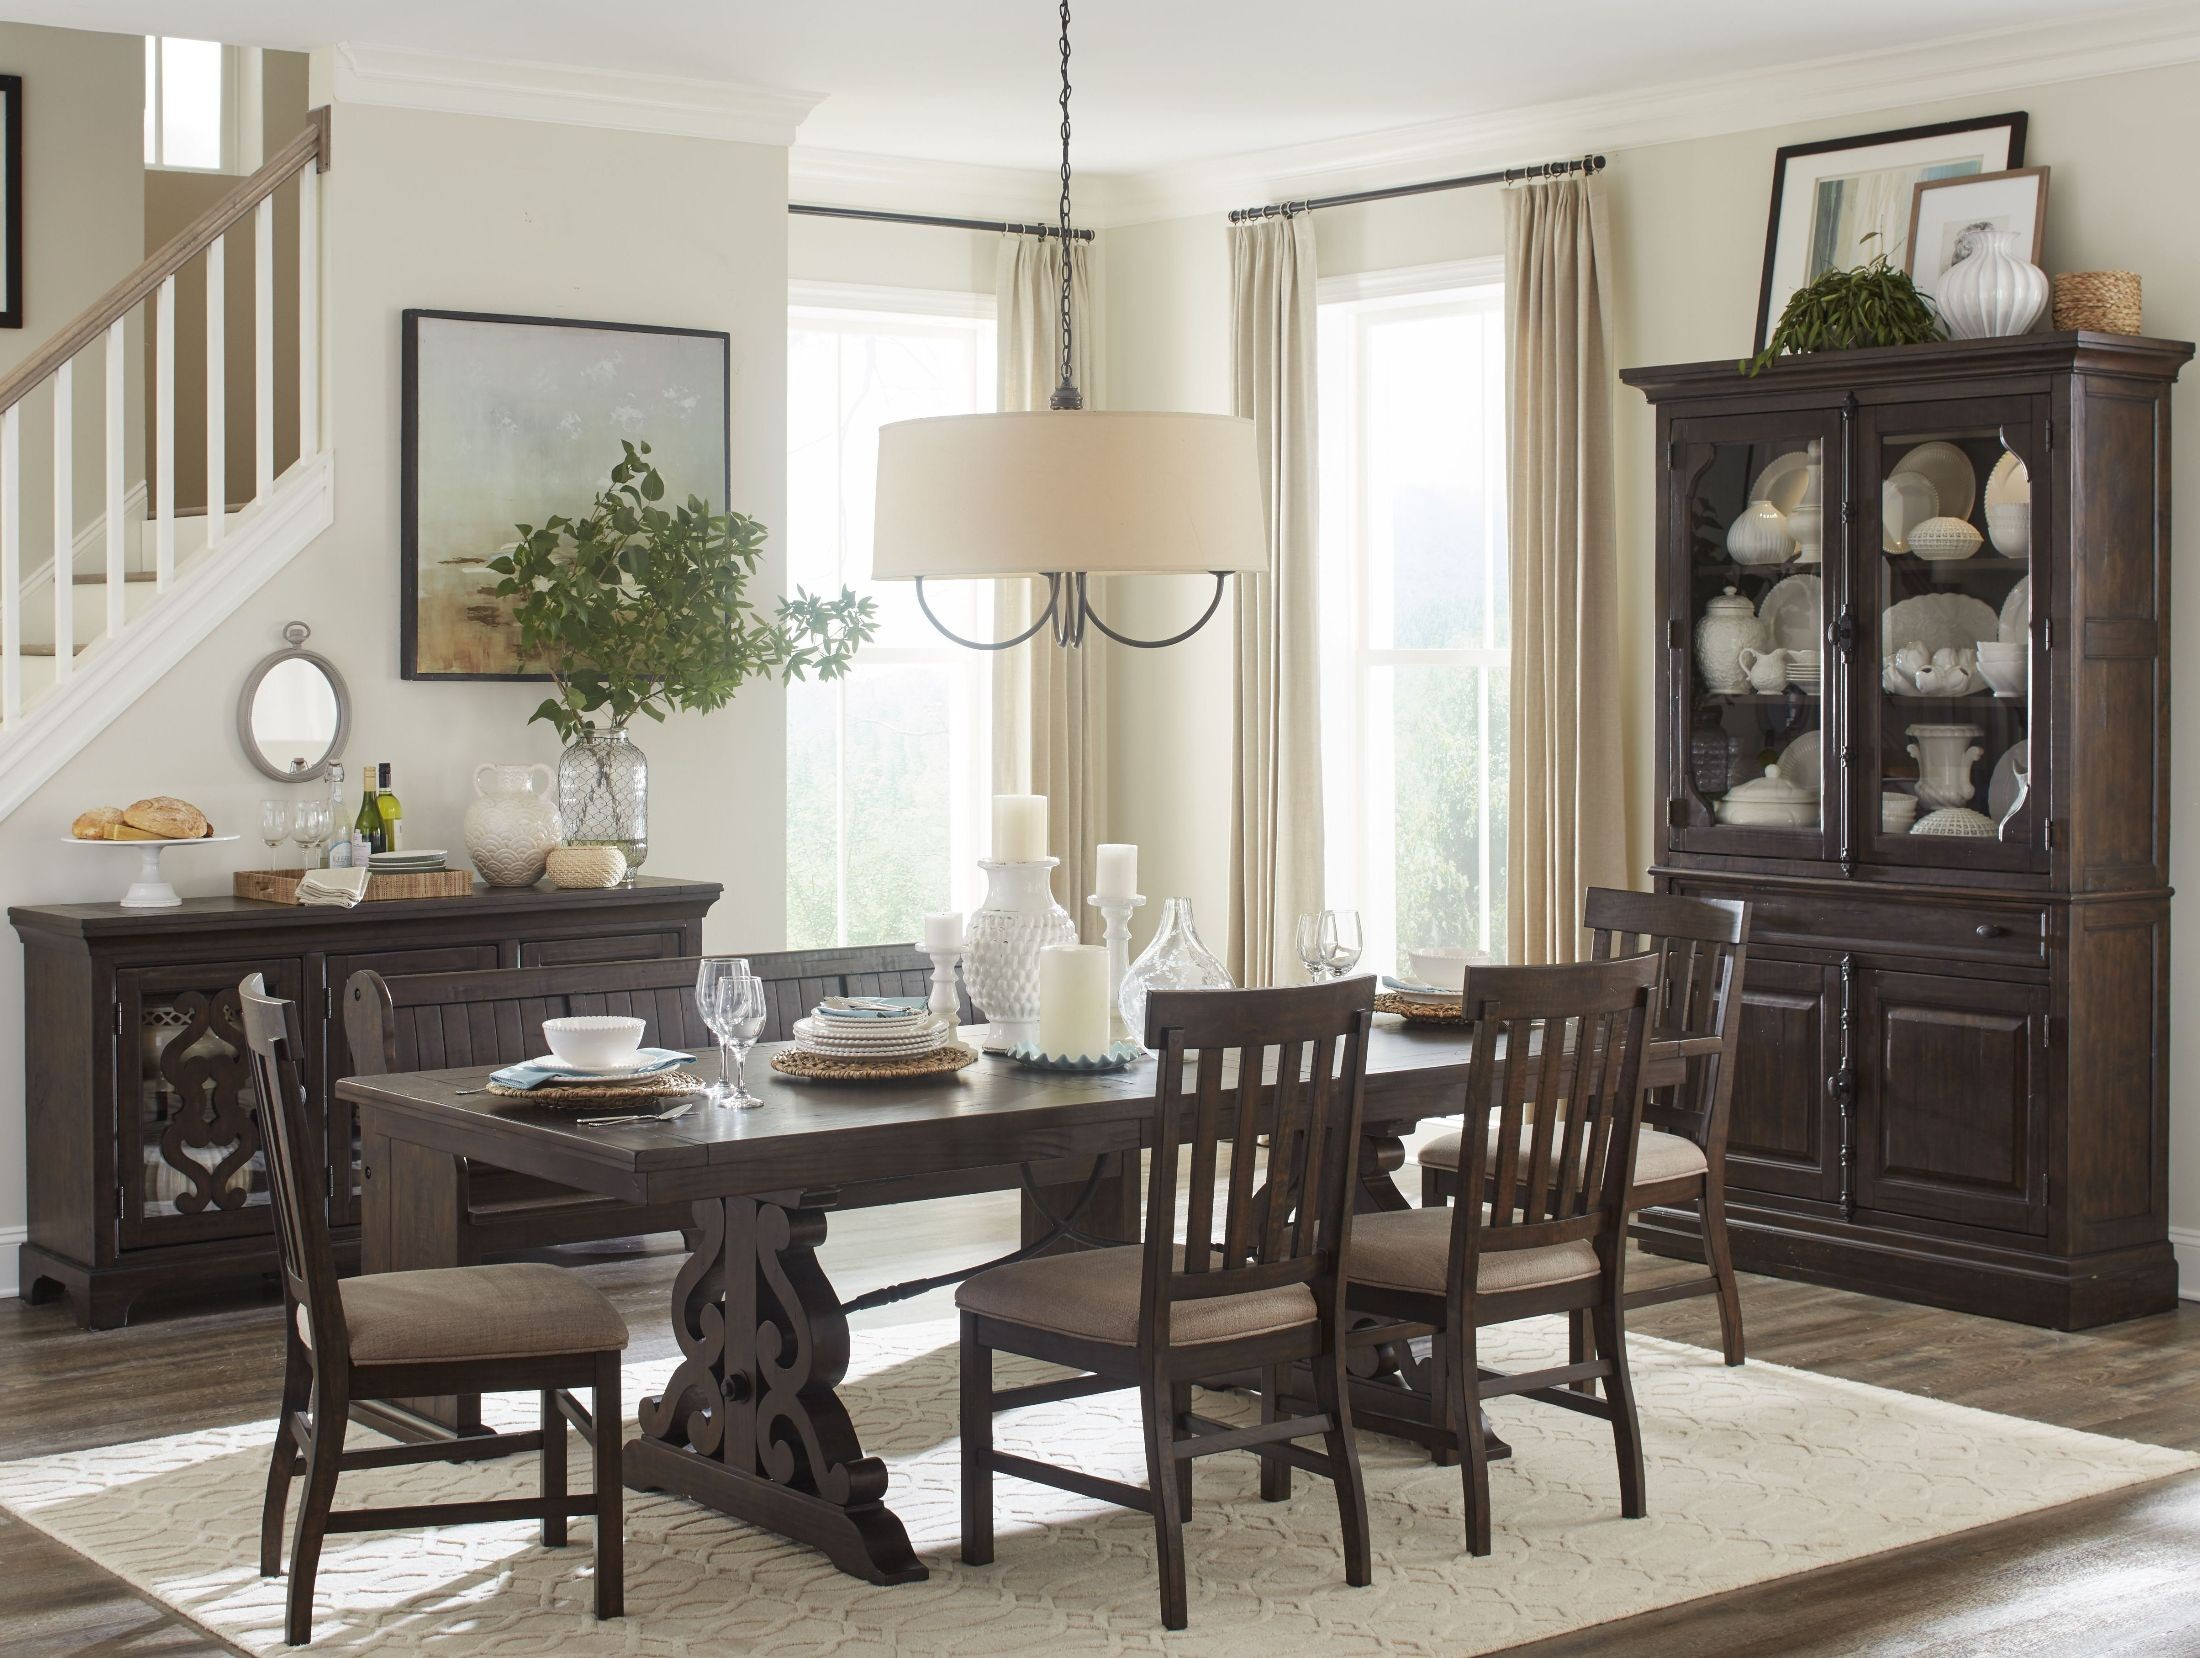 Dining Sets Tuscany Solid Wood Large Dining Set Table 6 Chairs: Furniture & More St.Claire Rustic Pine